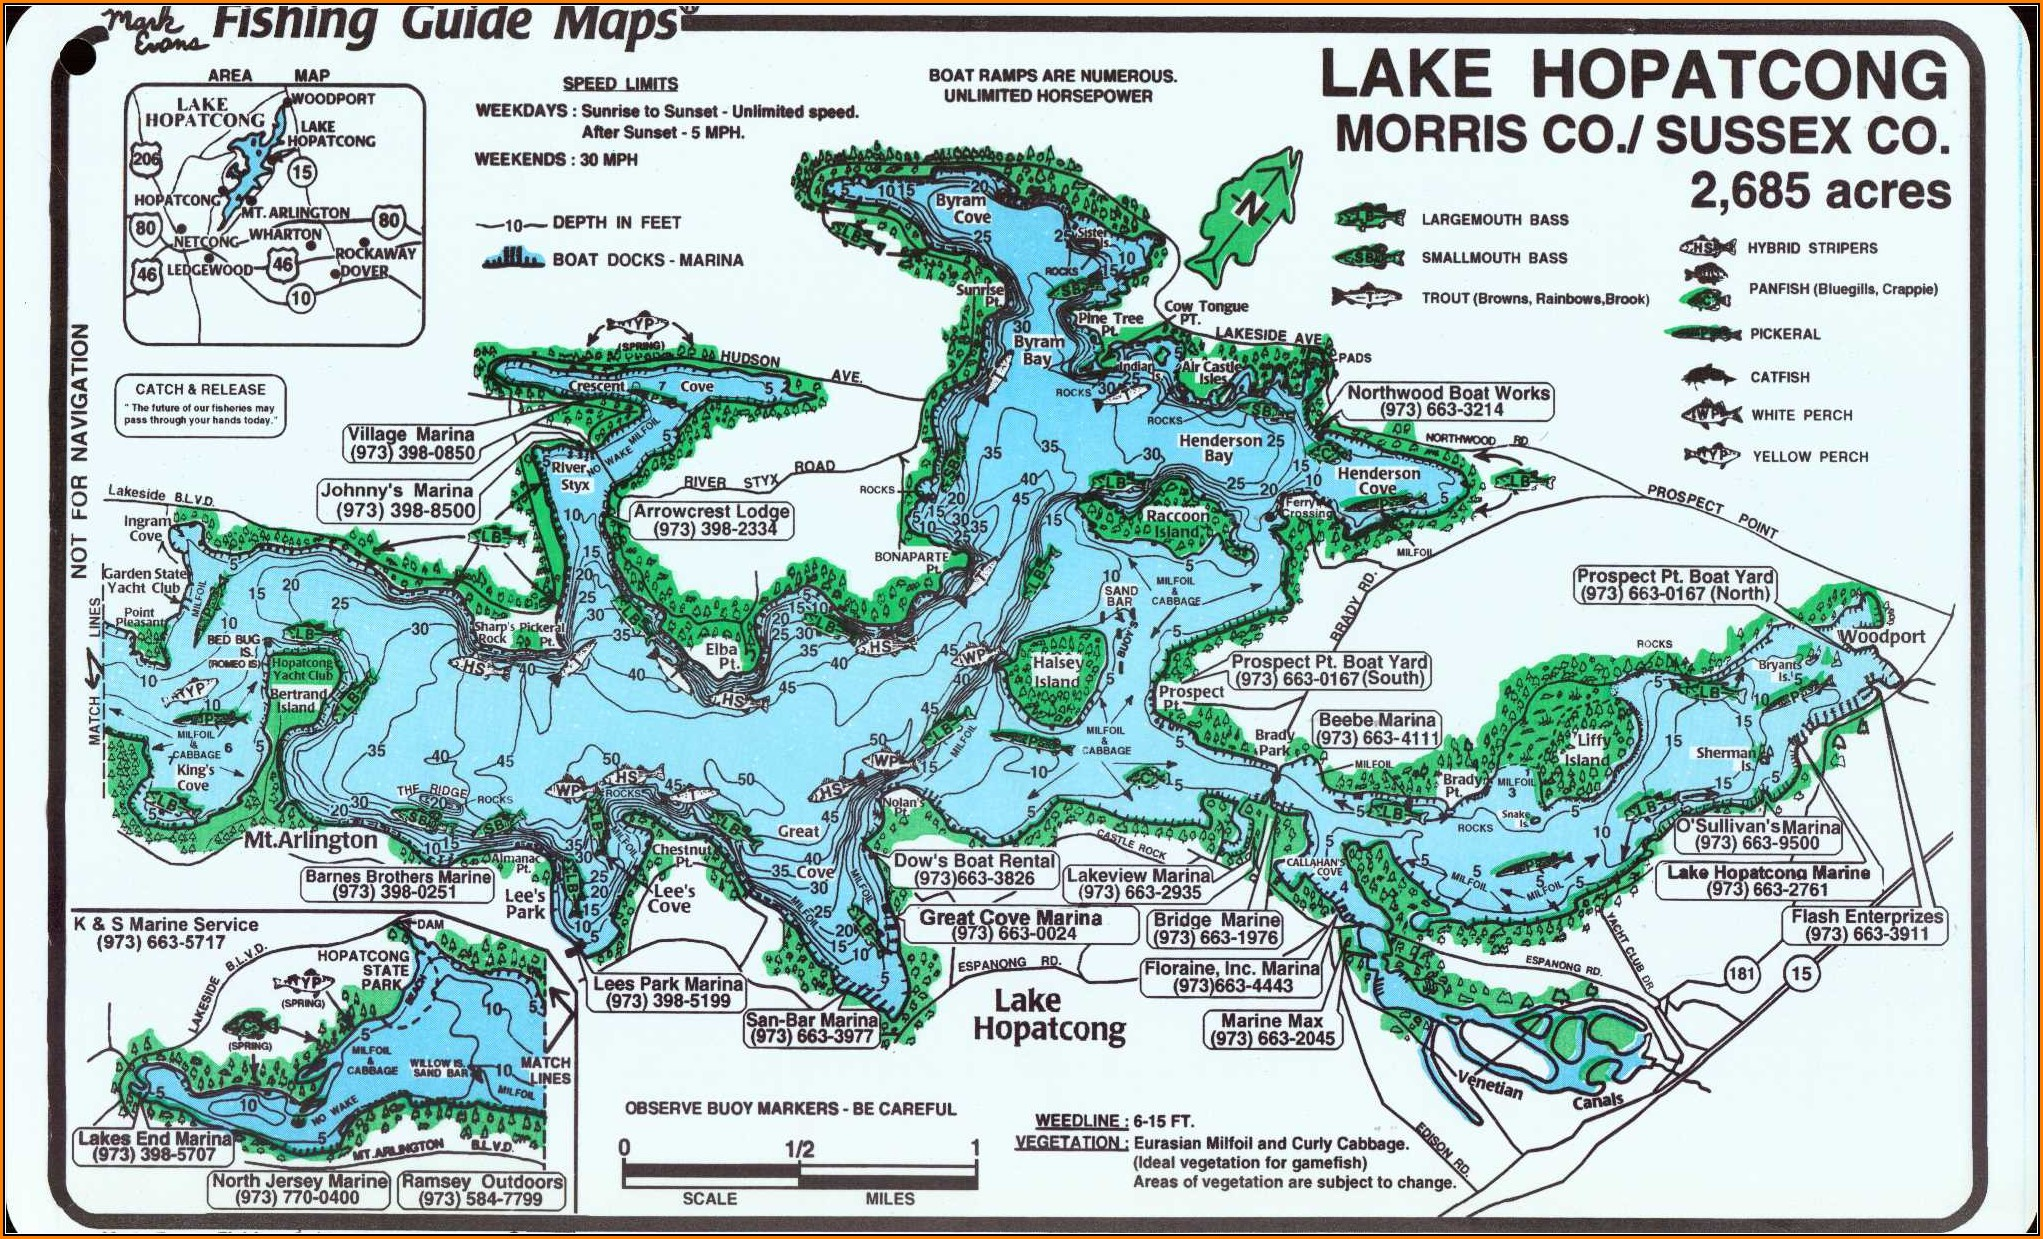 Lake Hopatcong Fishing Map